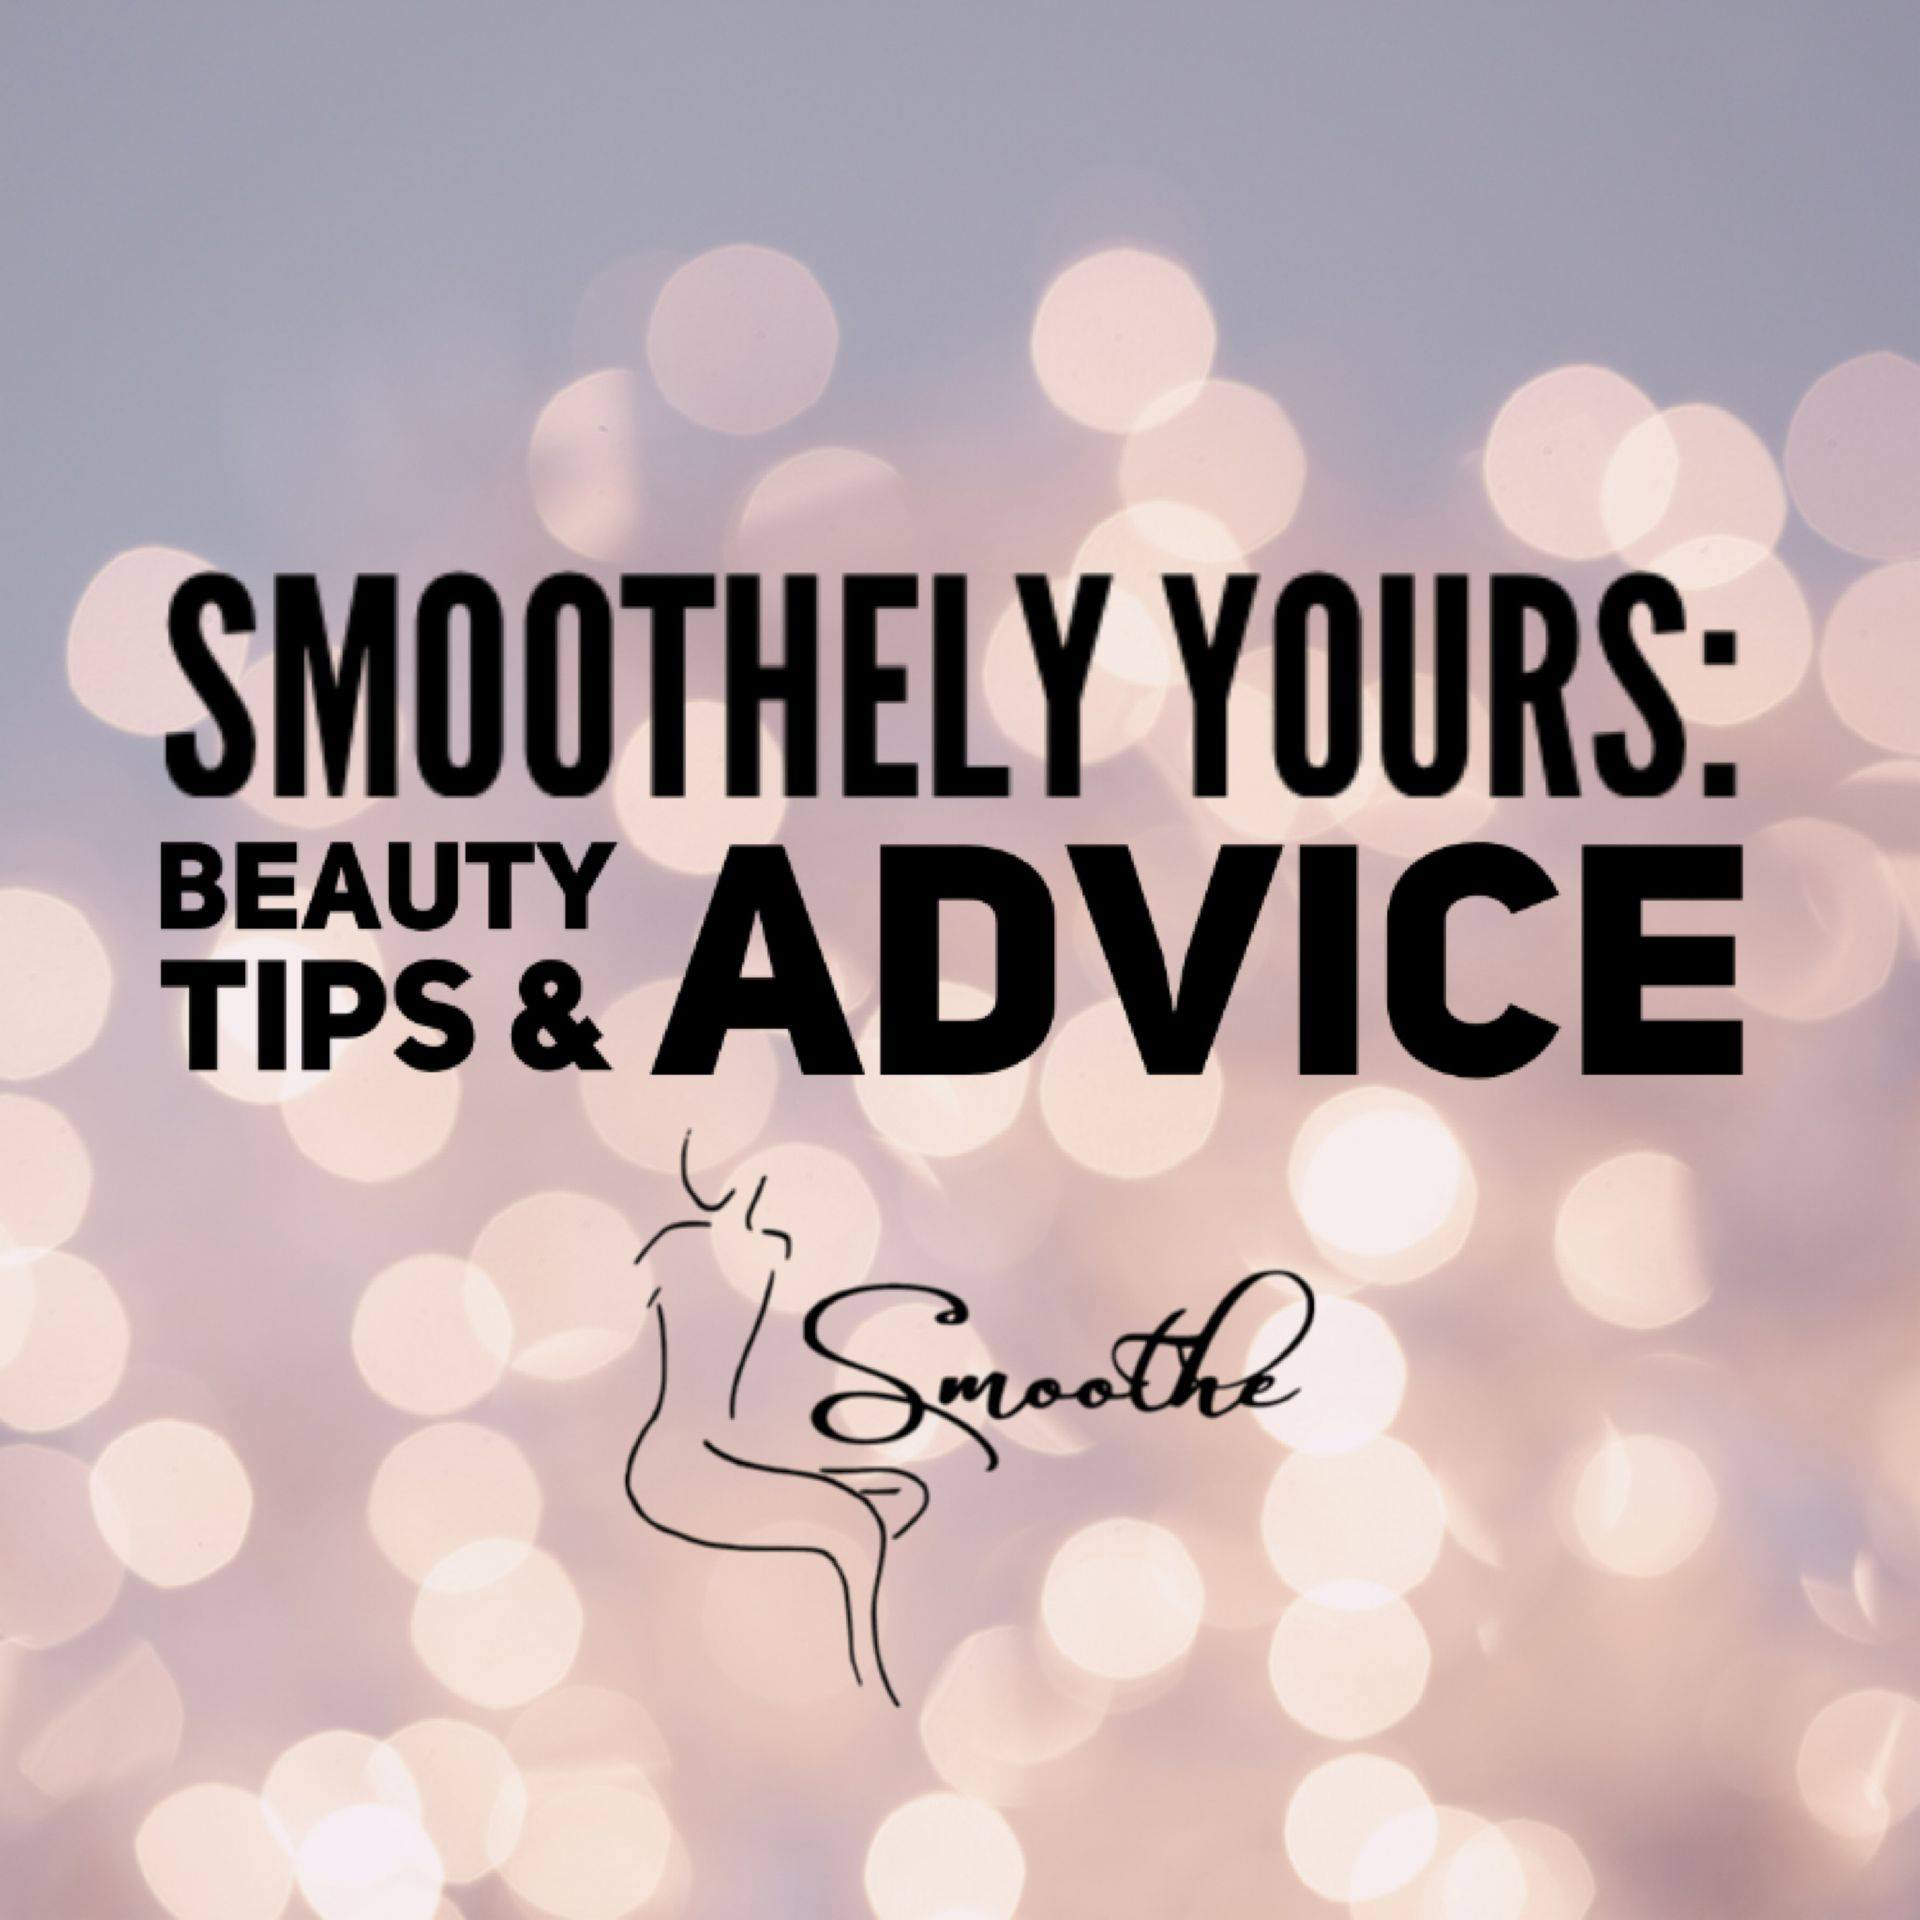 Smoothely Yours: Beauty Tips and Advice